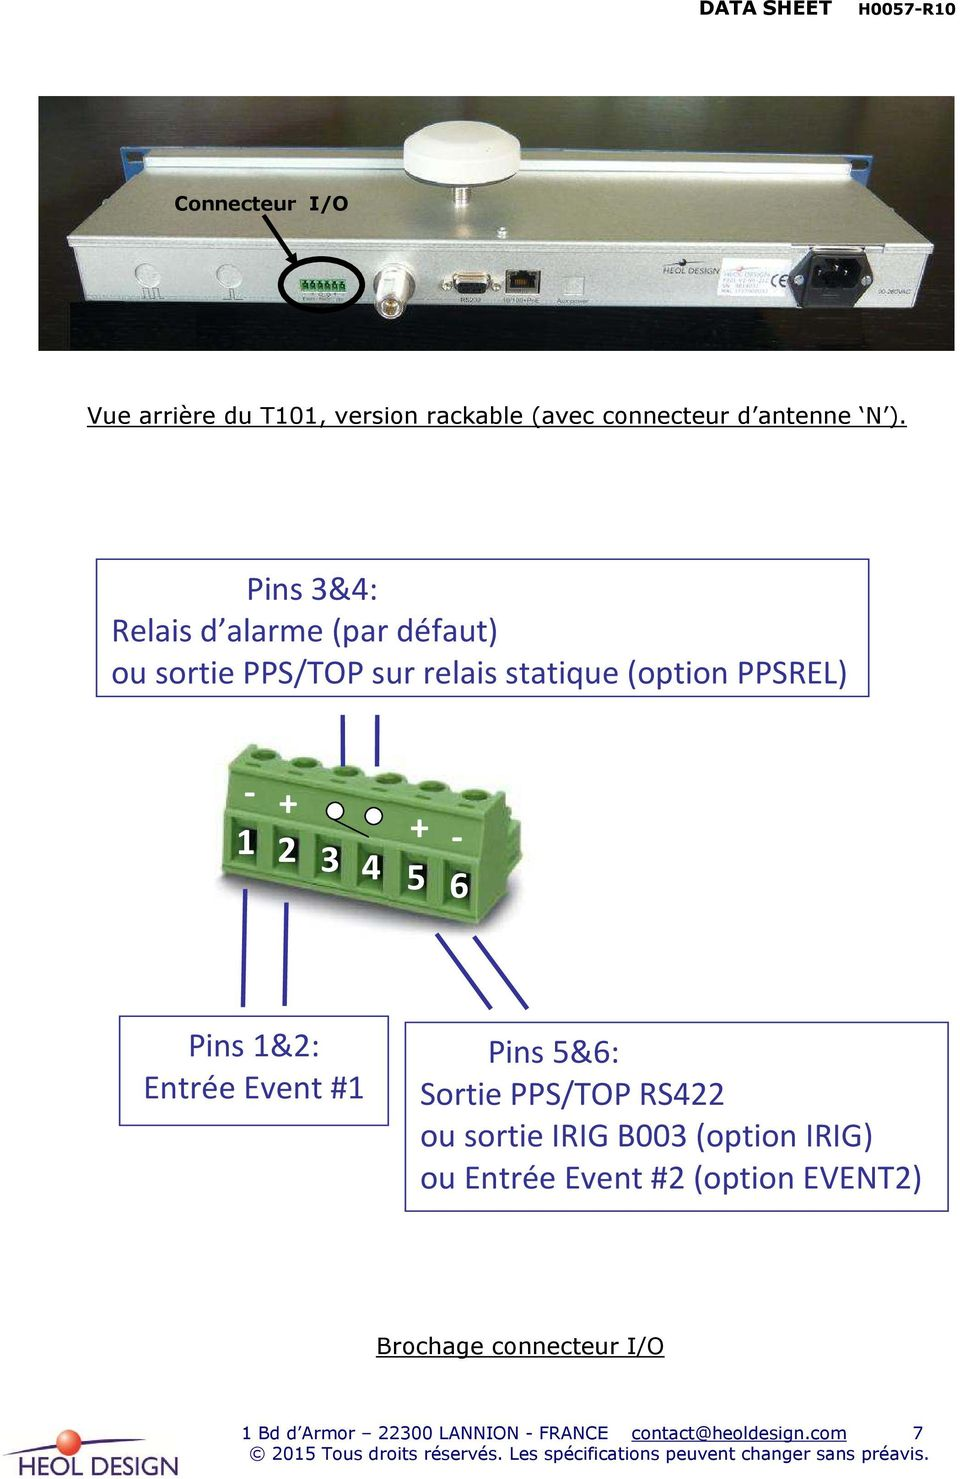 2-3 4 5 6 Pins 1&2: Entrée Event #1 Pins 5&6: Sortie PPS/TOP RS422 ou sortie IRIG B003 (option IRIG)